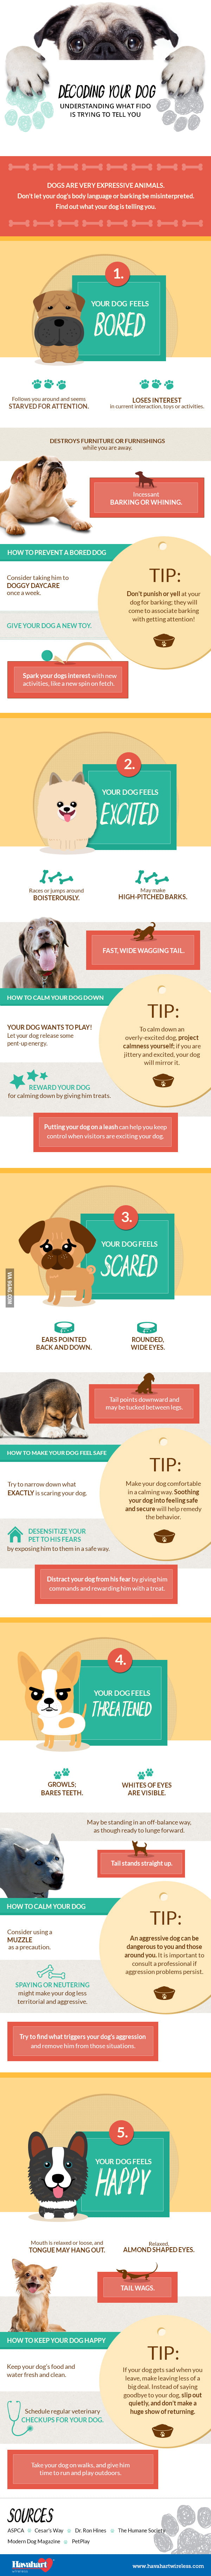 What Your Dog Is Really Trying To Tell You From Its Behavior